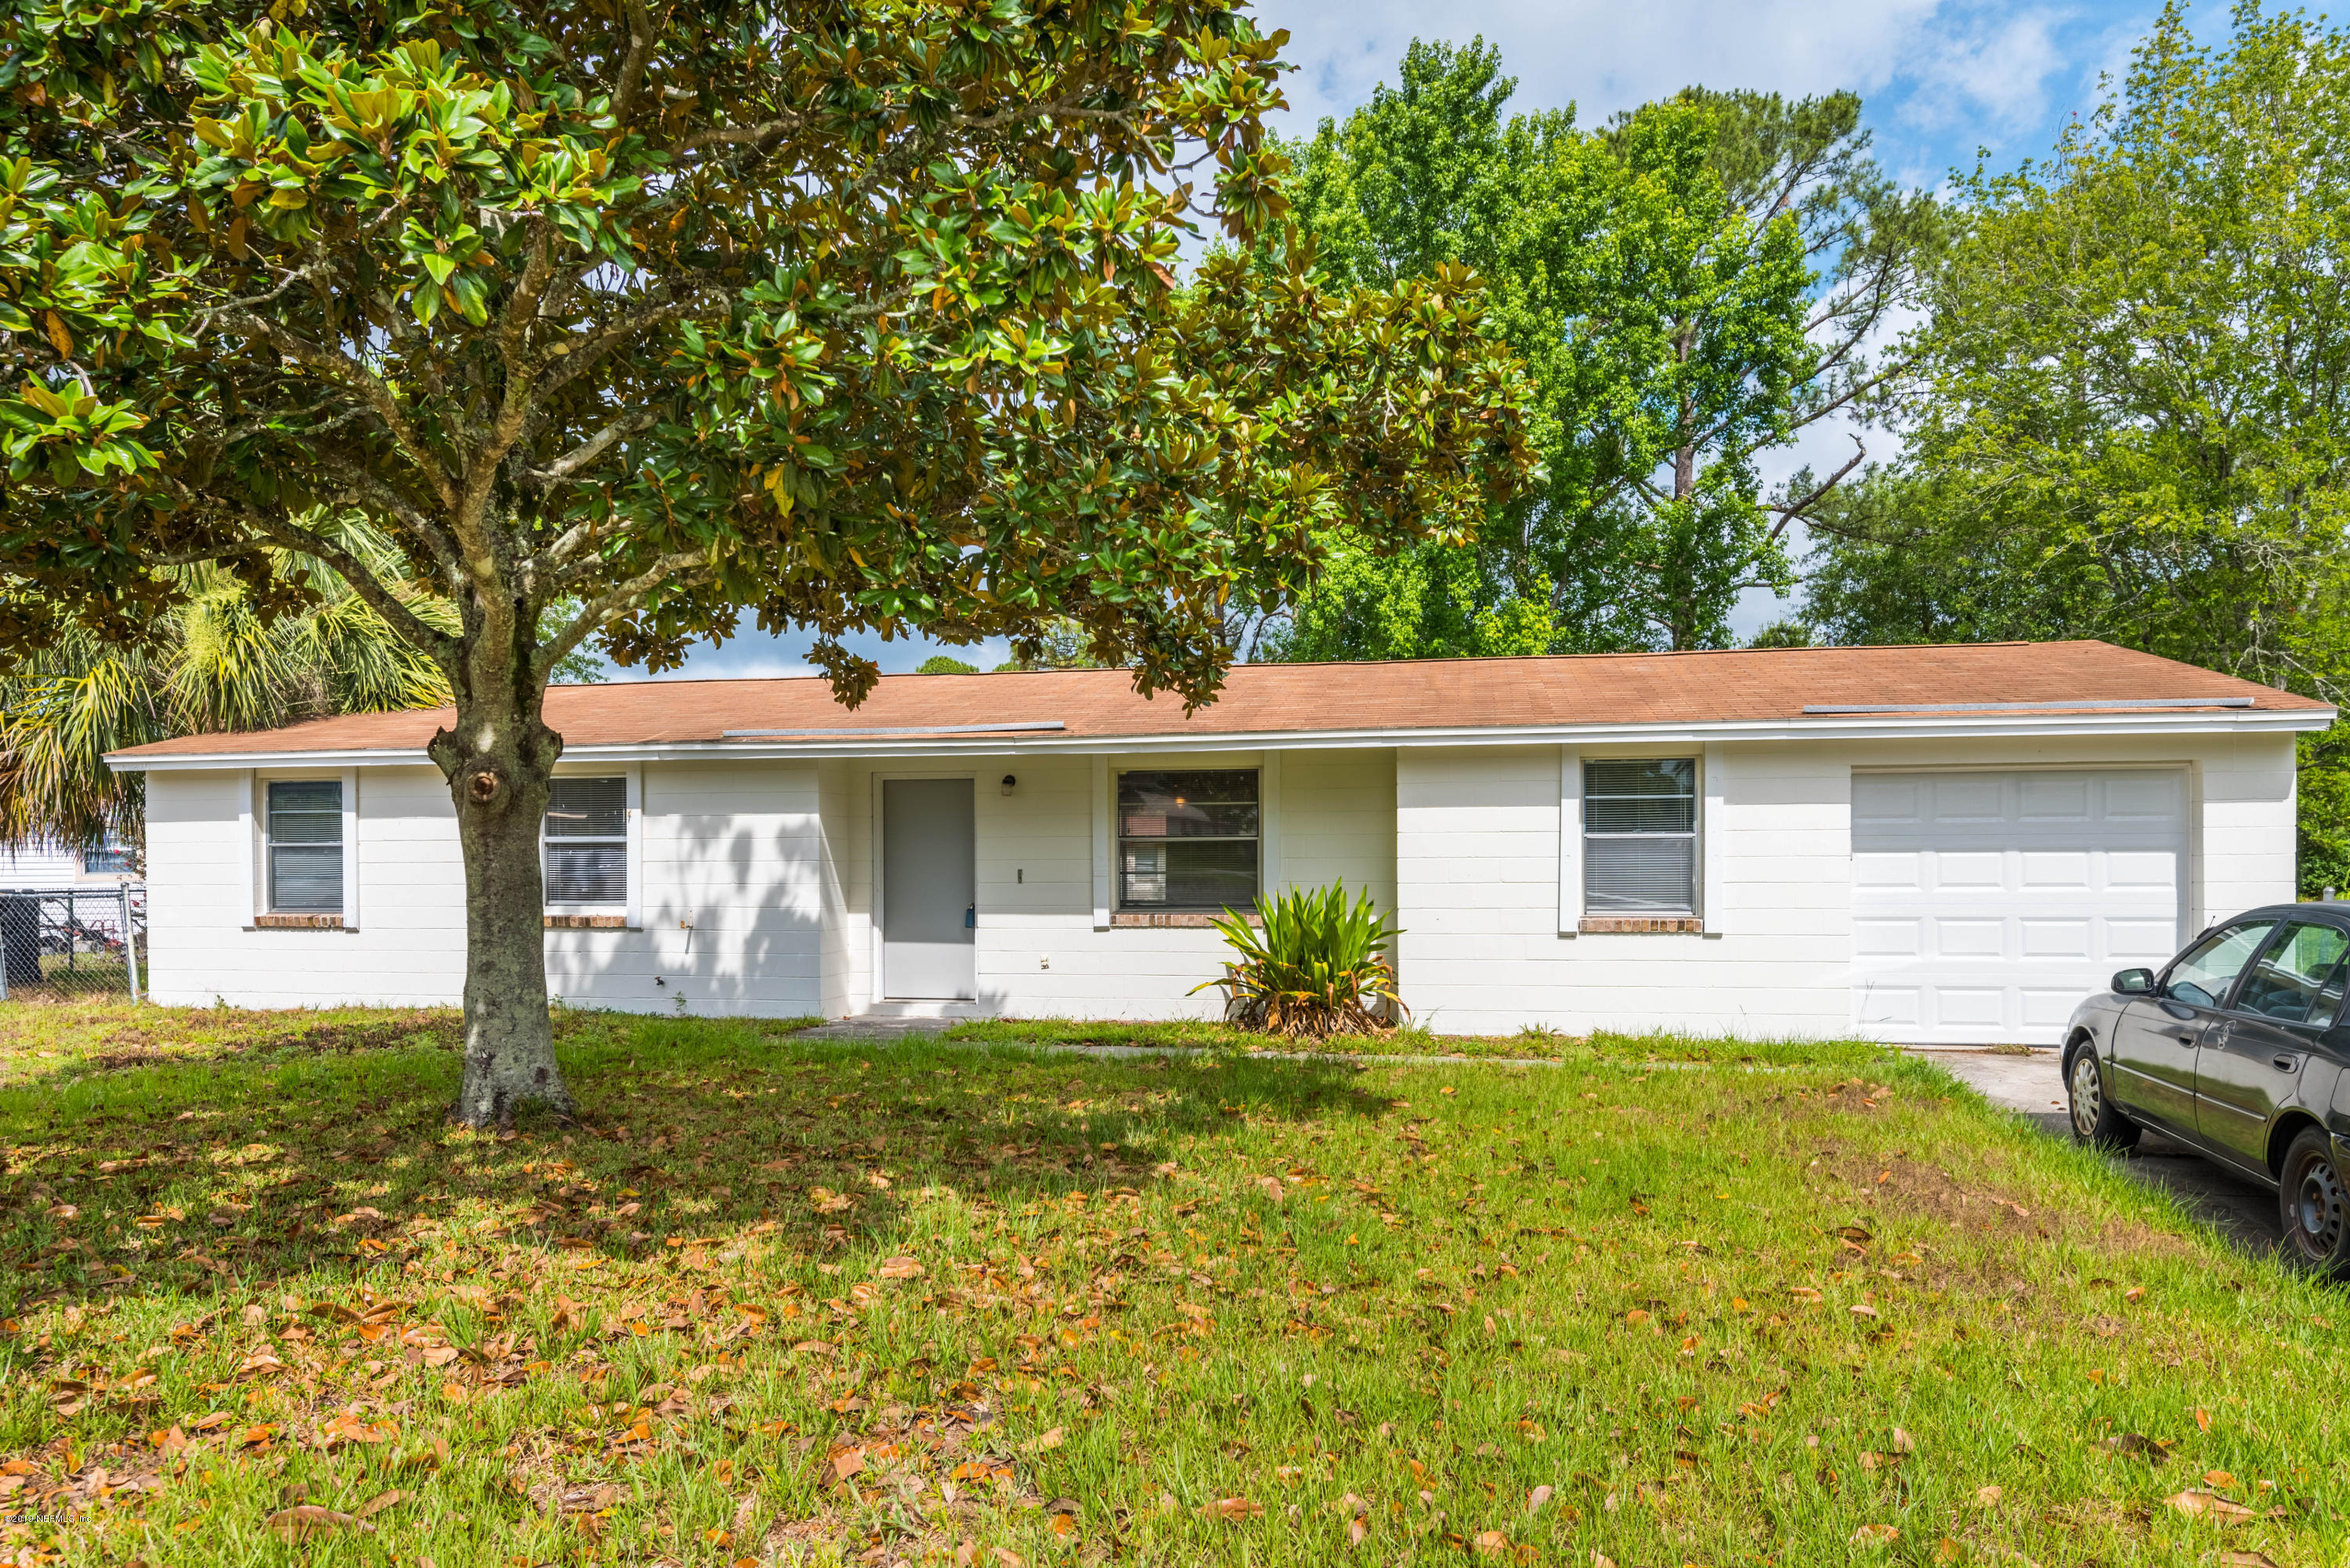 1270 CHEYENNE, ORANGE PARK, FLORIDA 32065, 3 Bedrooms Bedrooms, ,2 BathroomsBathrooms,Residential - single family,For sale,CHEYENNE,1000818